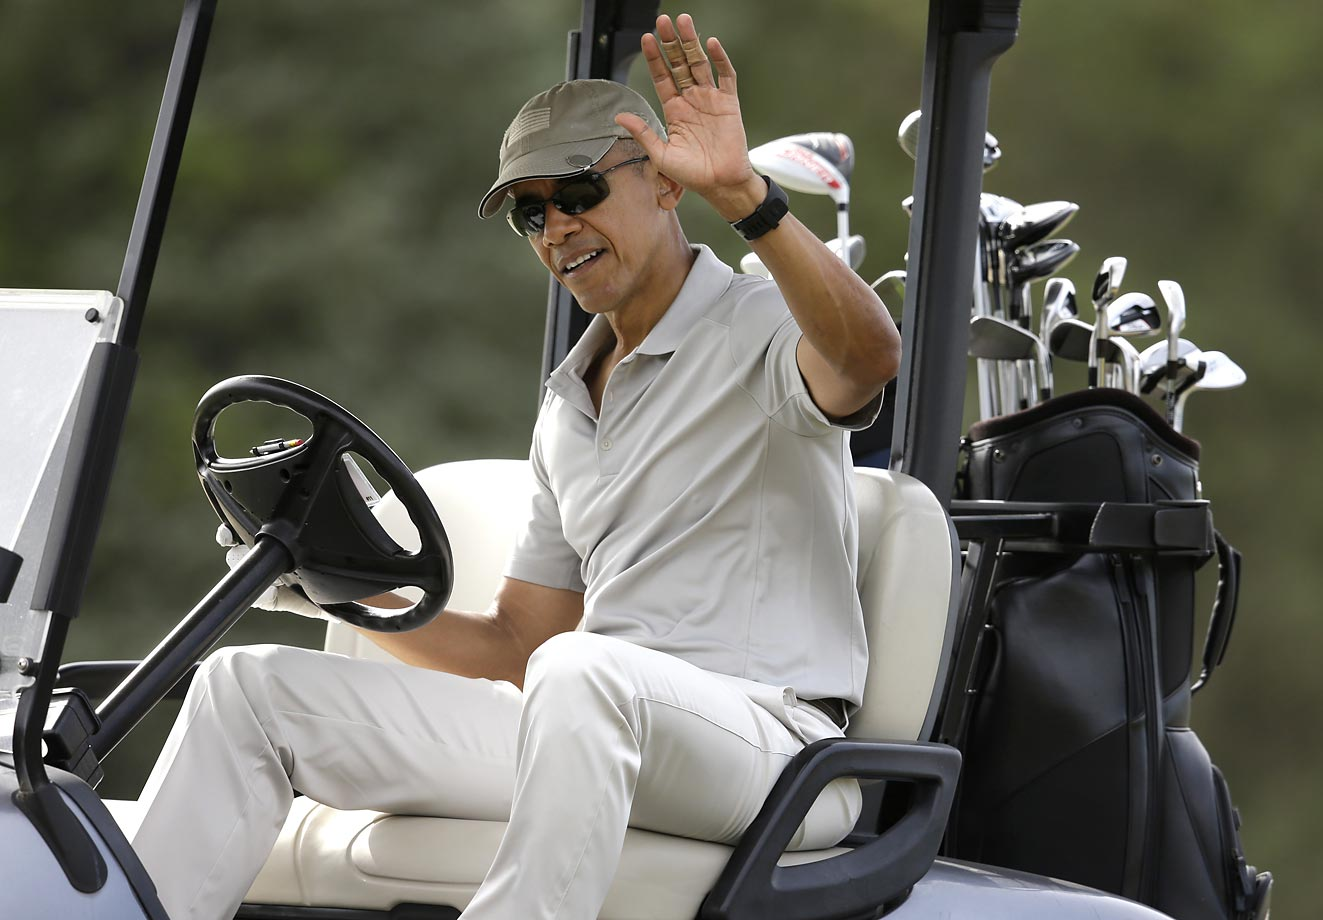 President Barack Obama waves to people from his cart while at Farm Neck Golf Club on Martha's Vineyard.